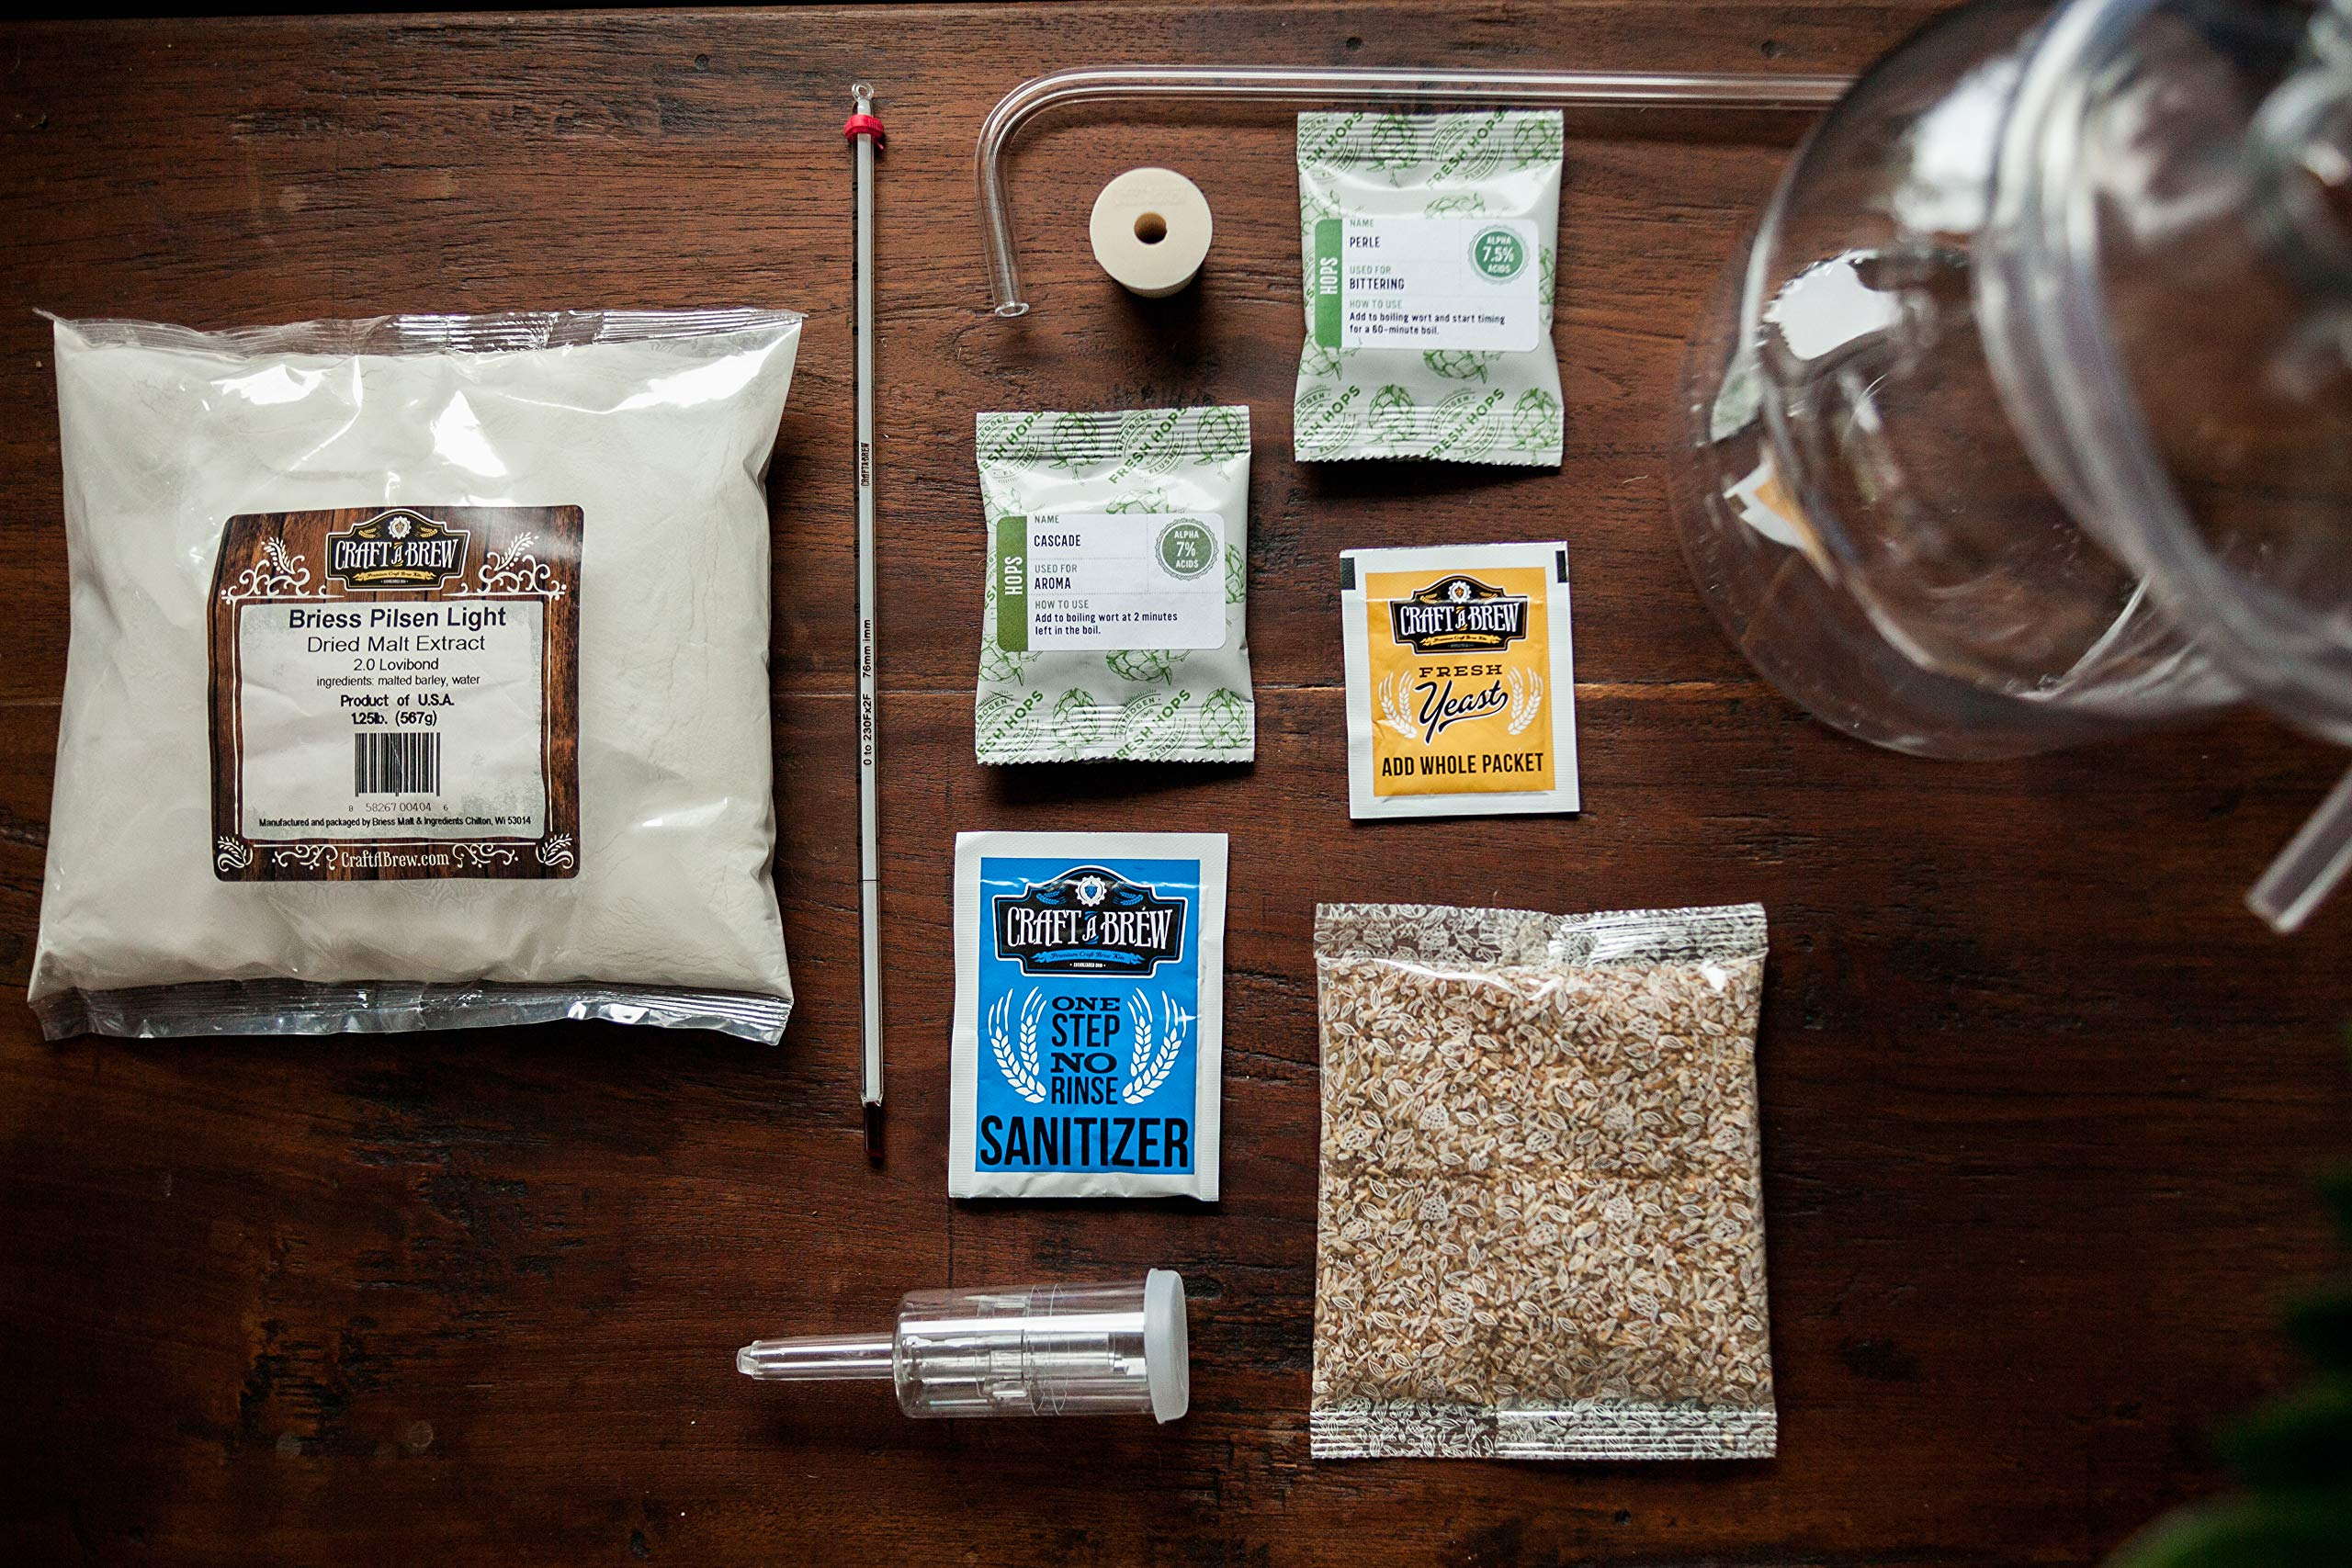 Home Brewing Kit for Beer - Craft A Brew Oktoberfest Ale Beer Kit - Reusable Make Your Own Beer Kit - Starter Set 1 Gallon by Craft A Brew (Image #3)